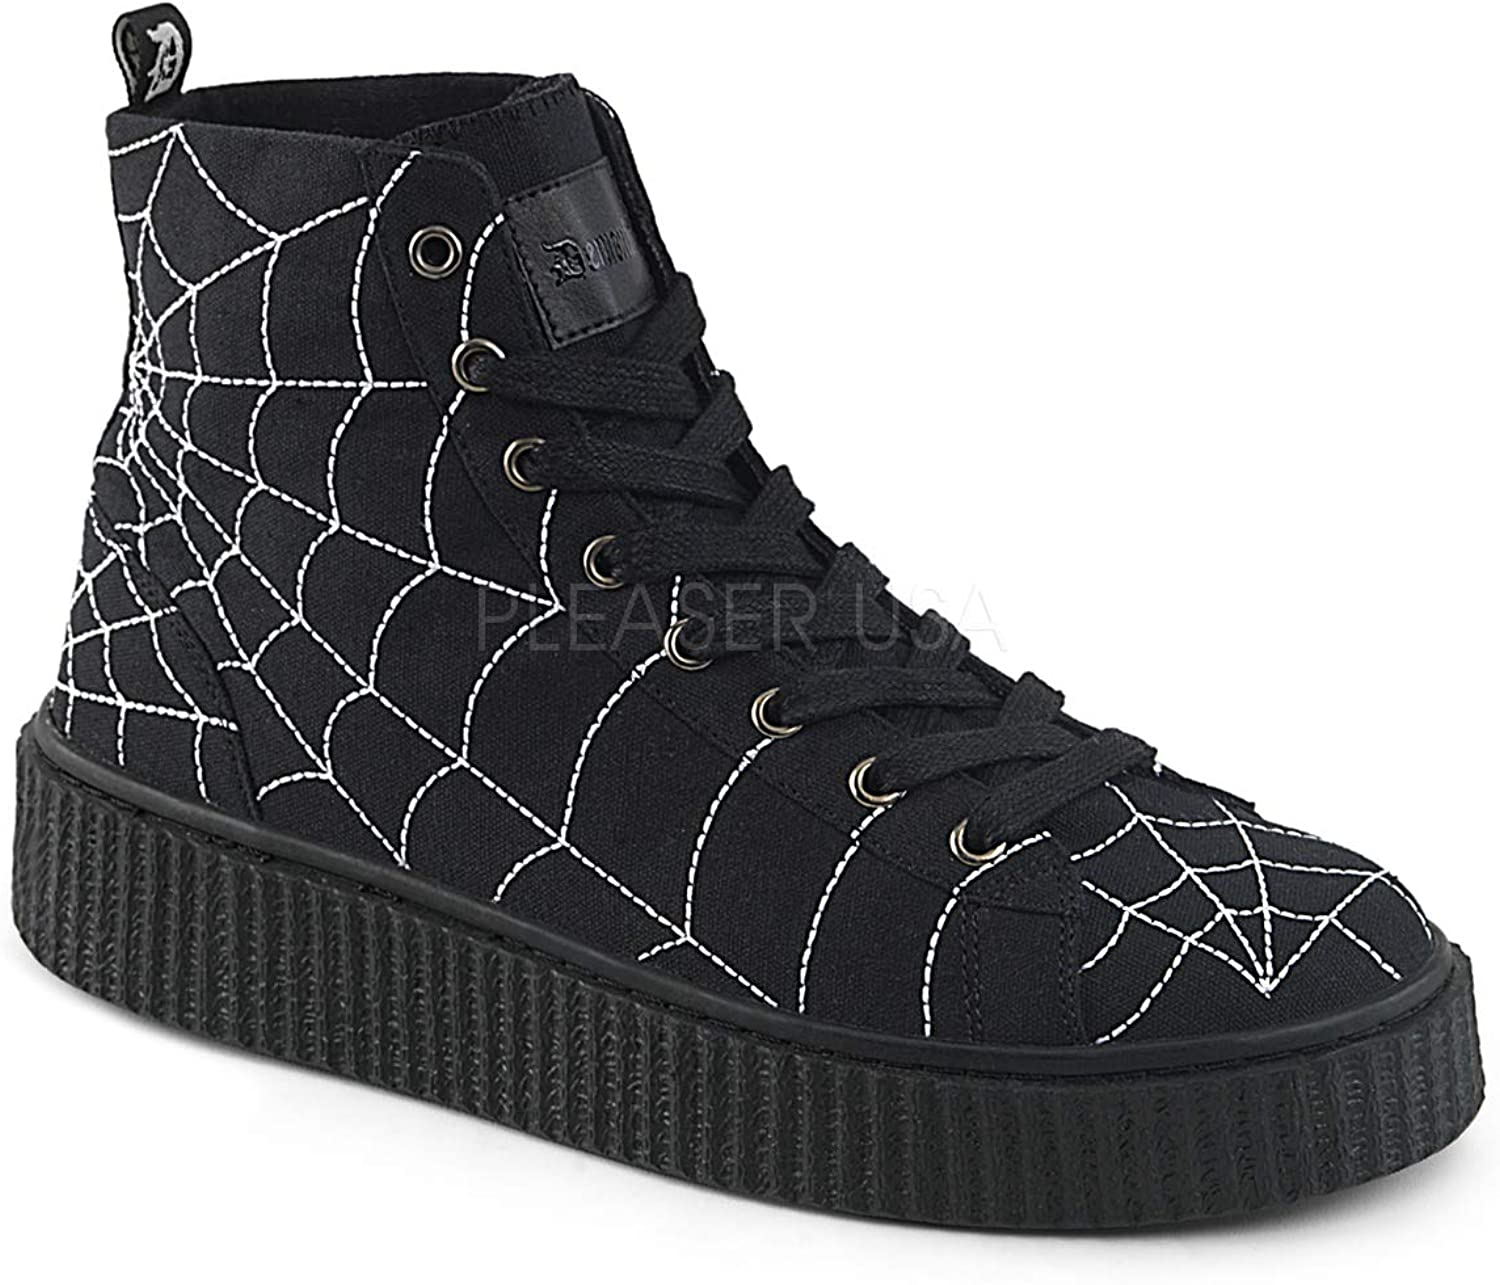 Demonia 1 1 2 Inch Platform Round Toe Lace-Up Front High Top Creeper Sneaker